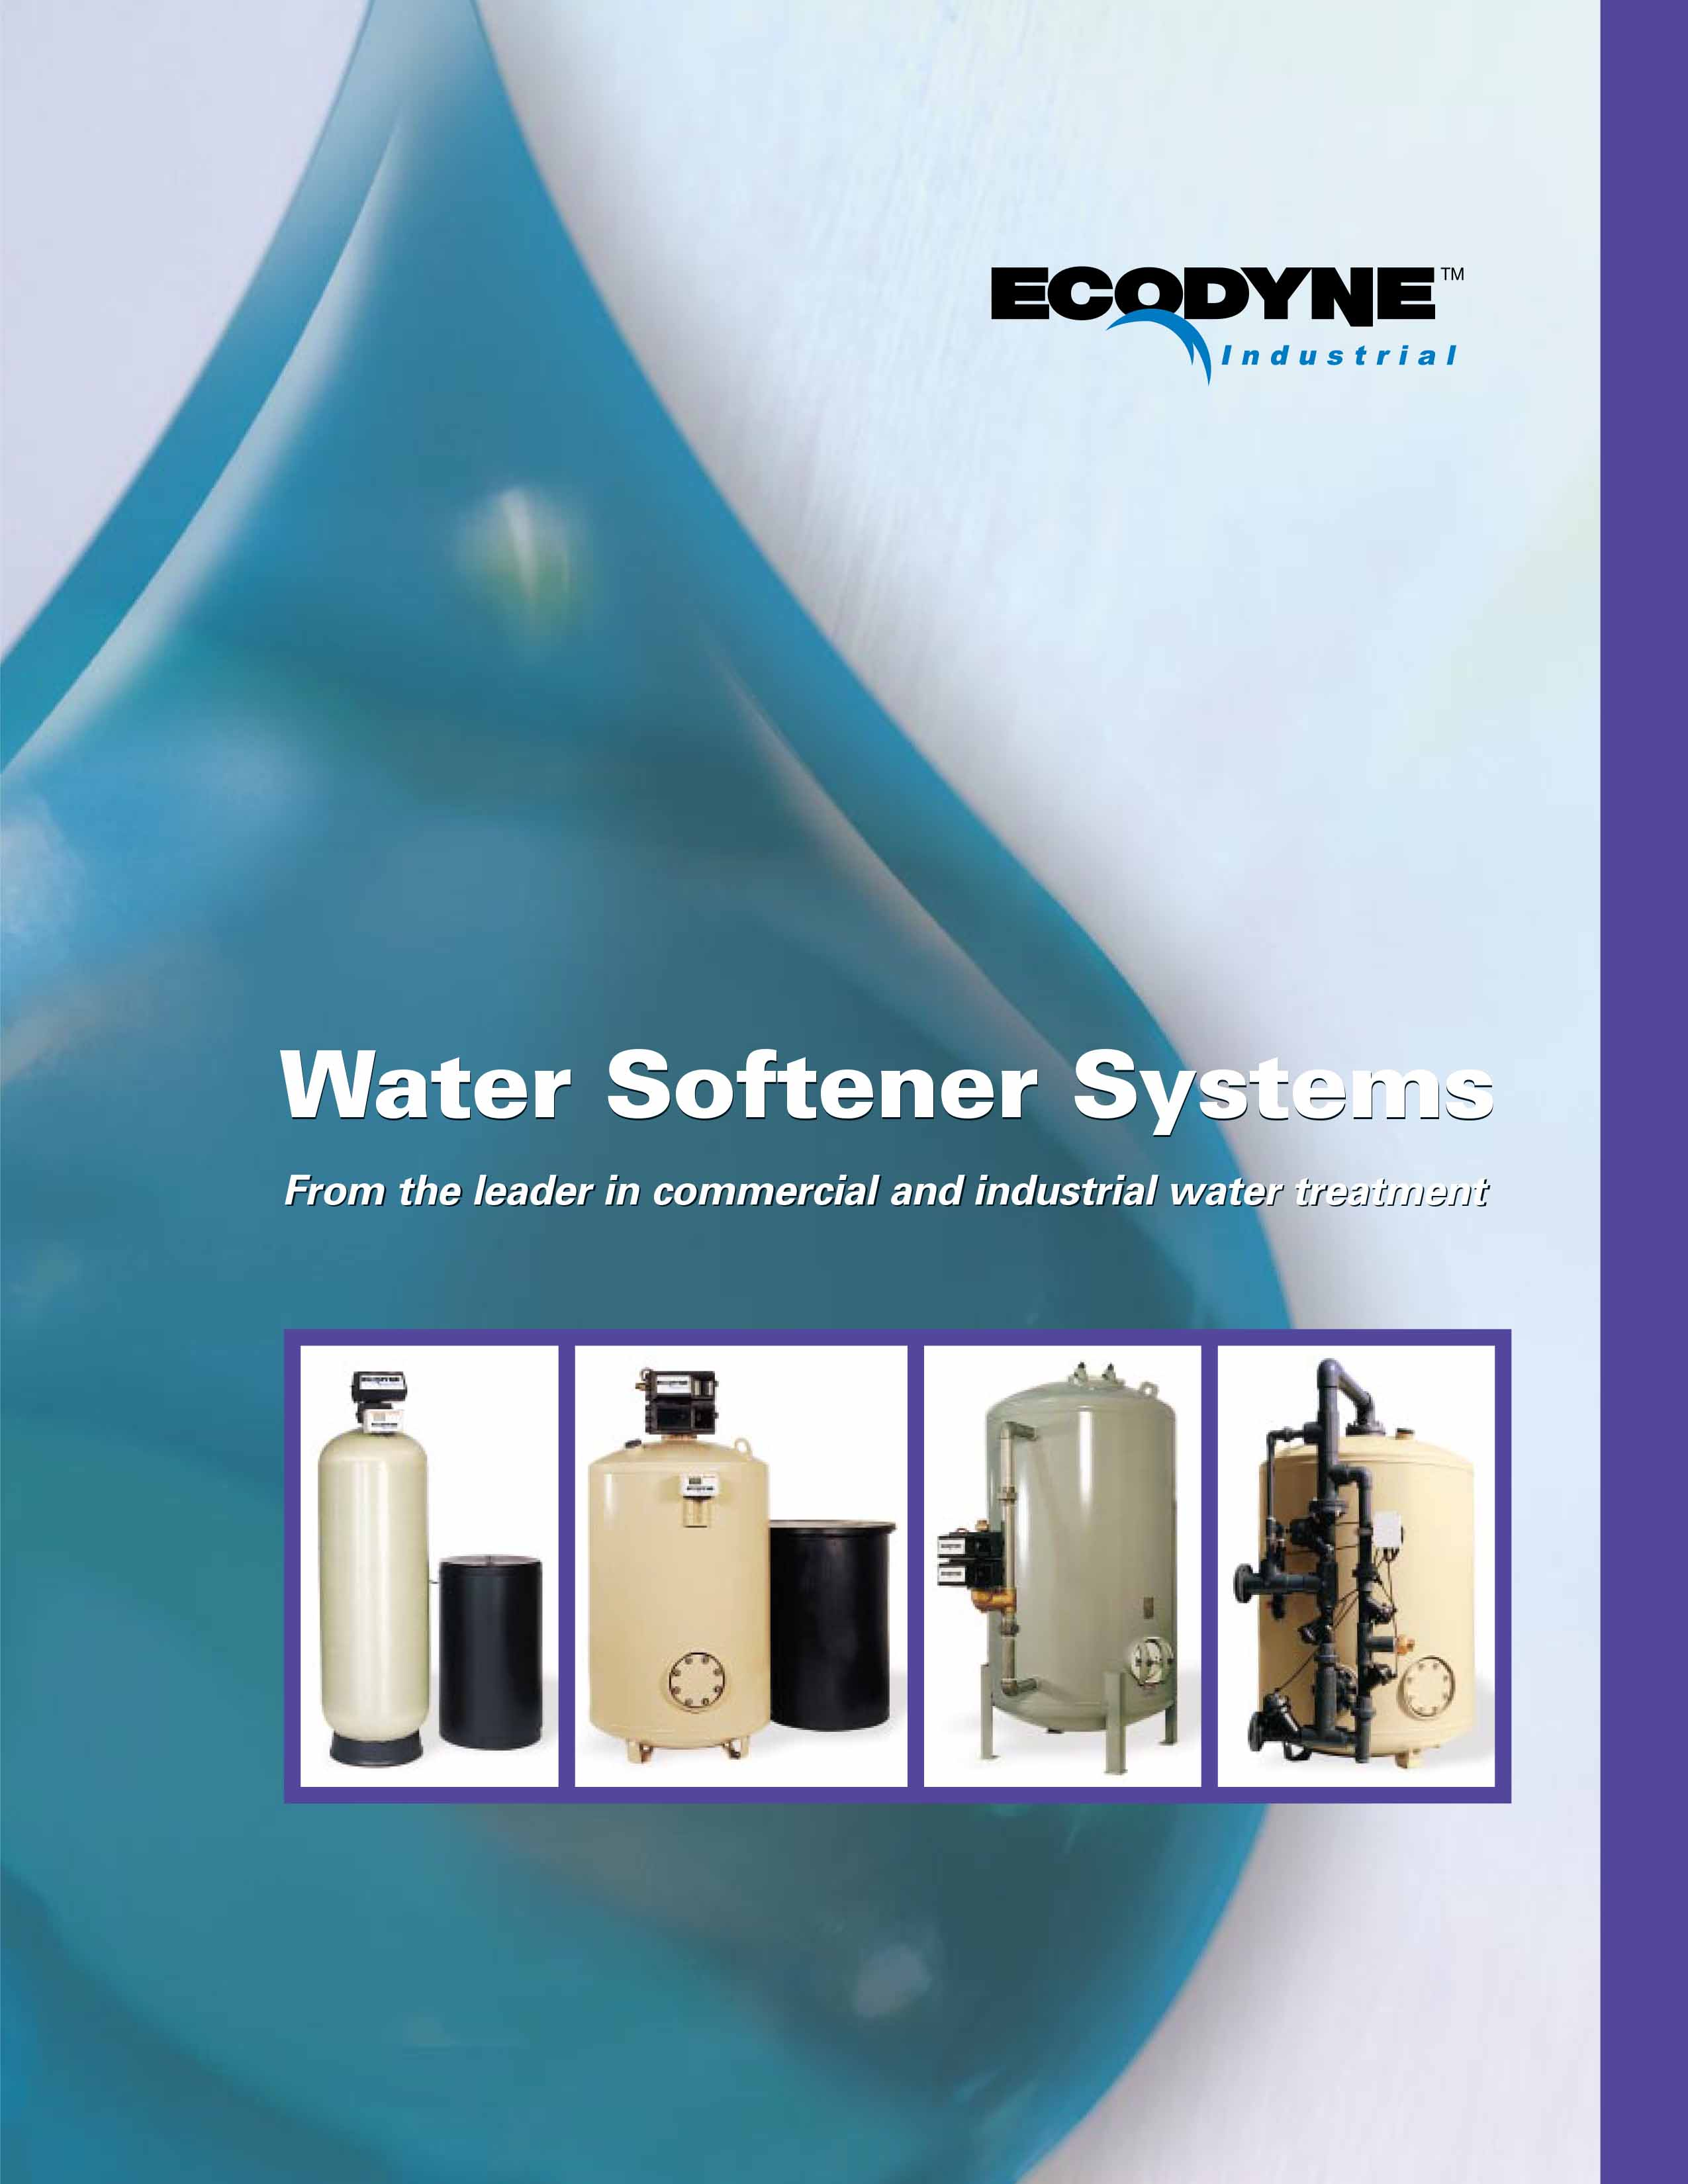 Ecodyne Water Softener Systems Flyer